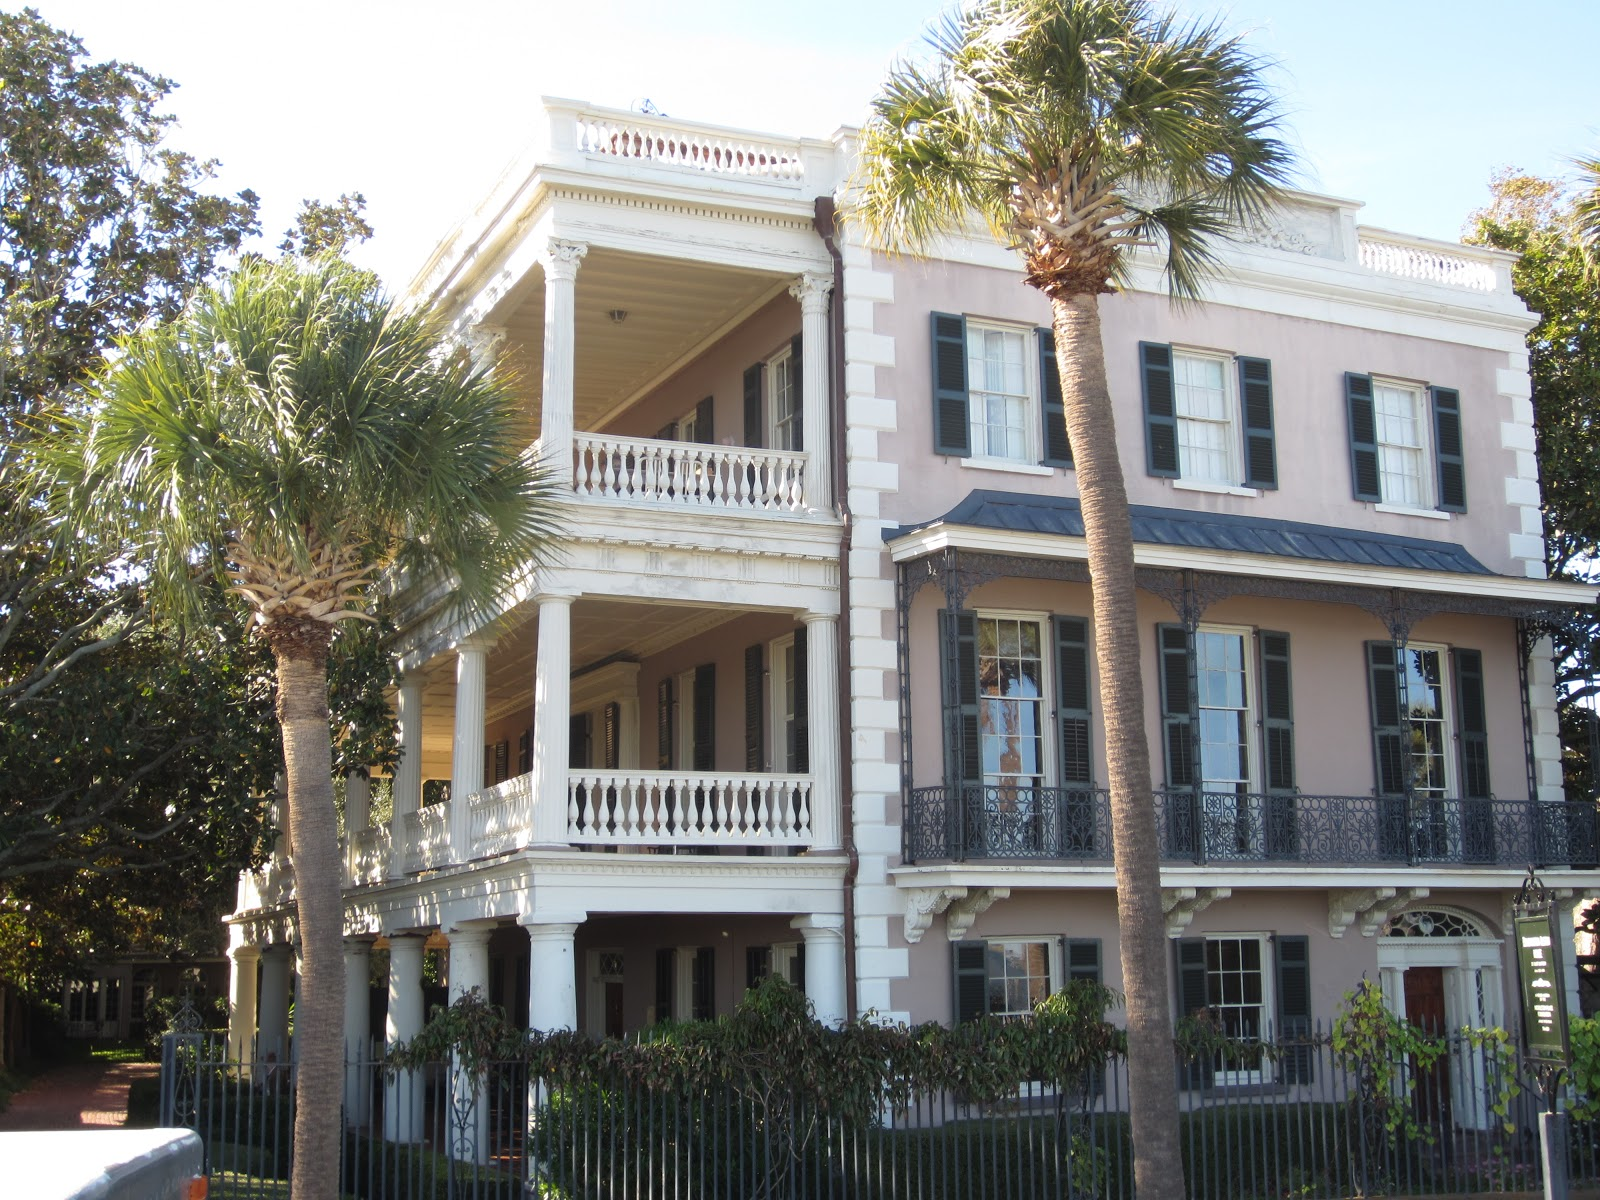 Exterior of Charleston Home